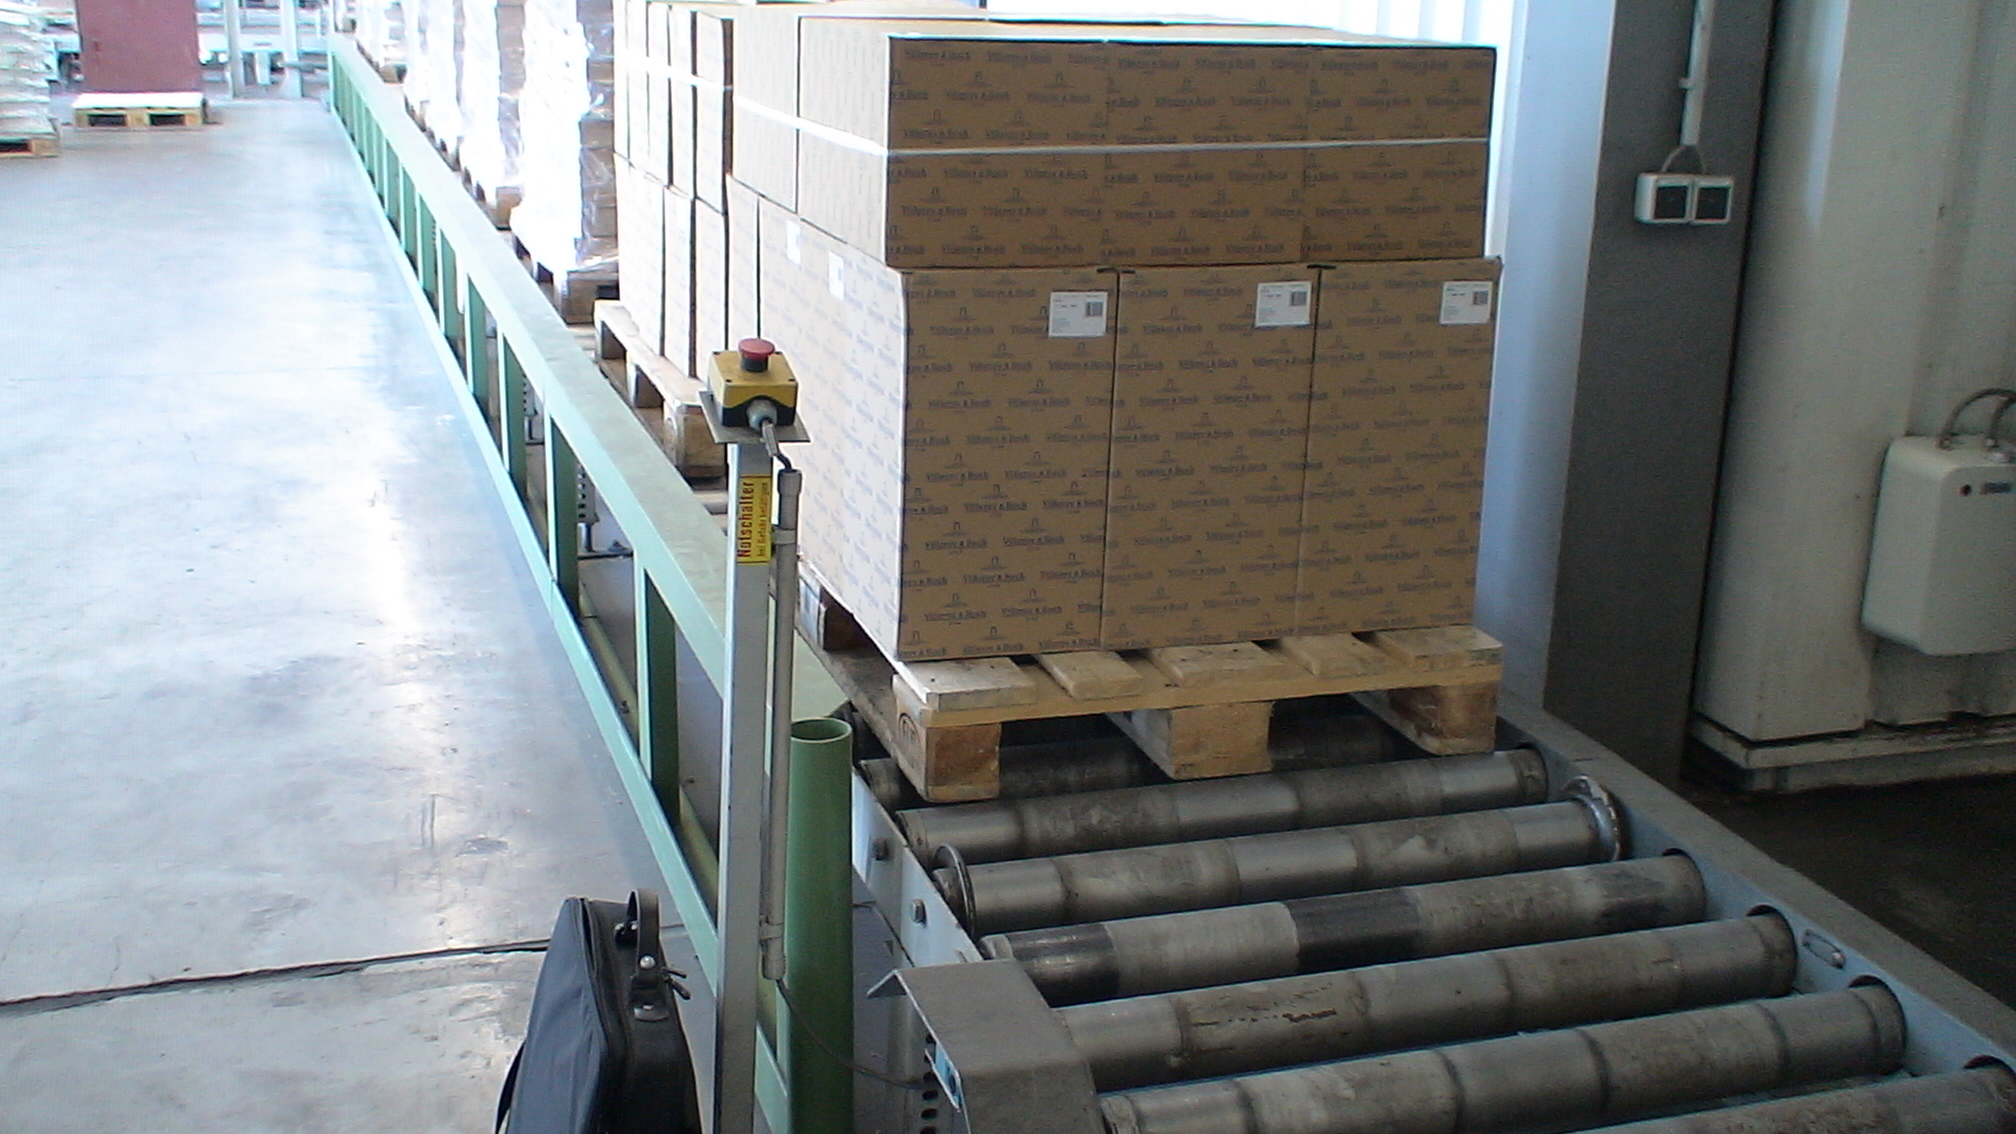 Pallet handling lines are an excellent investment